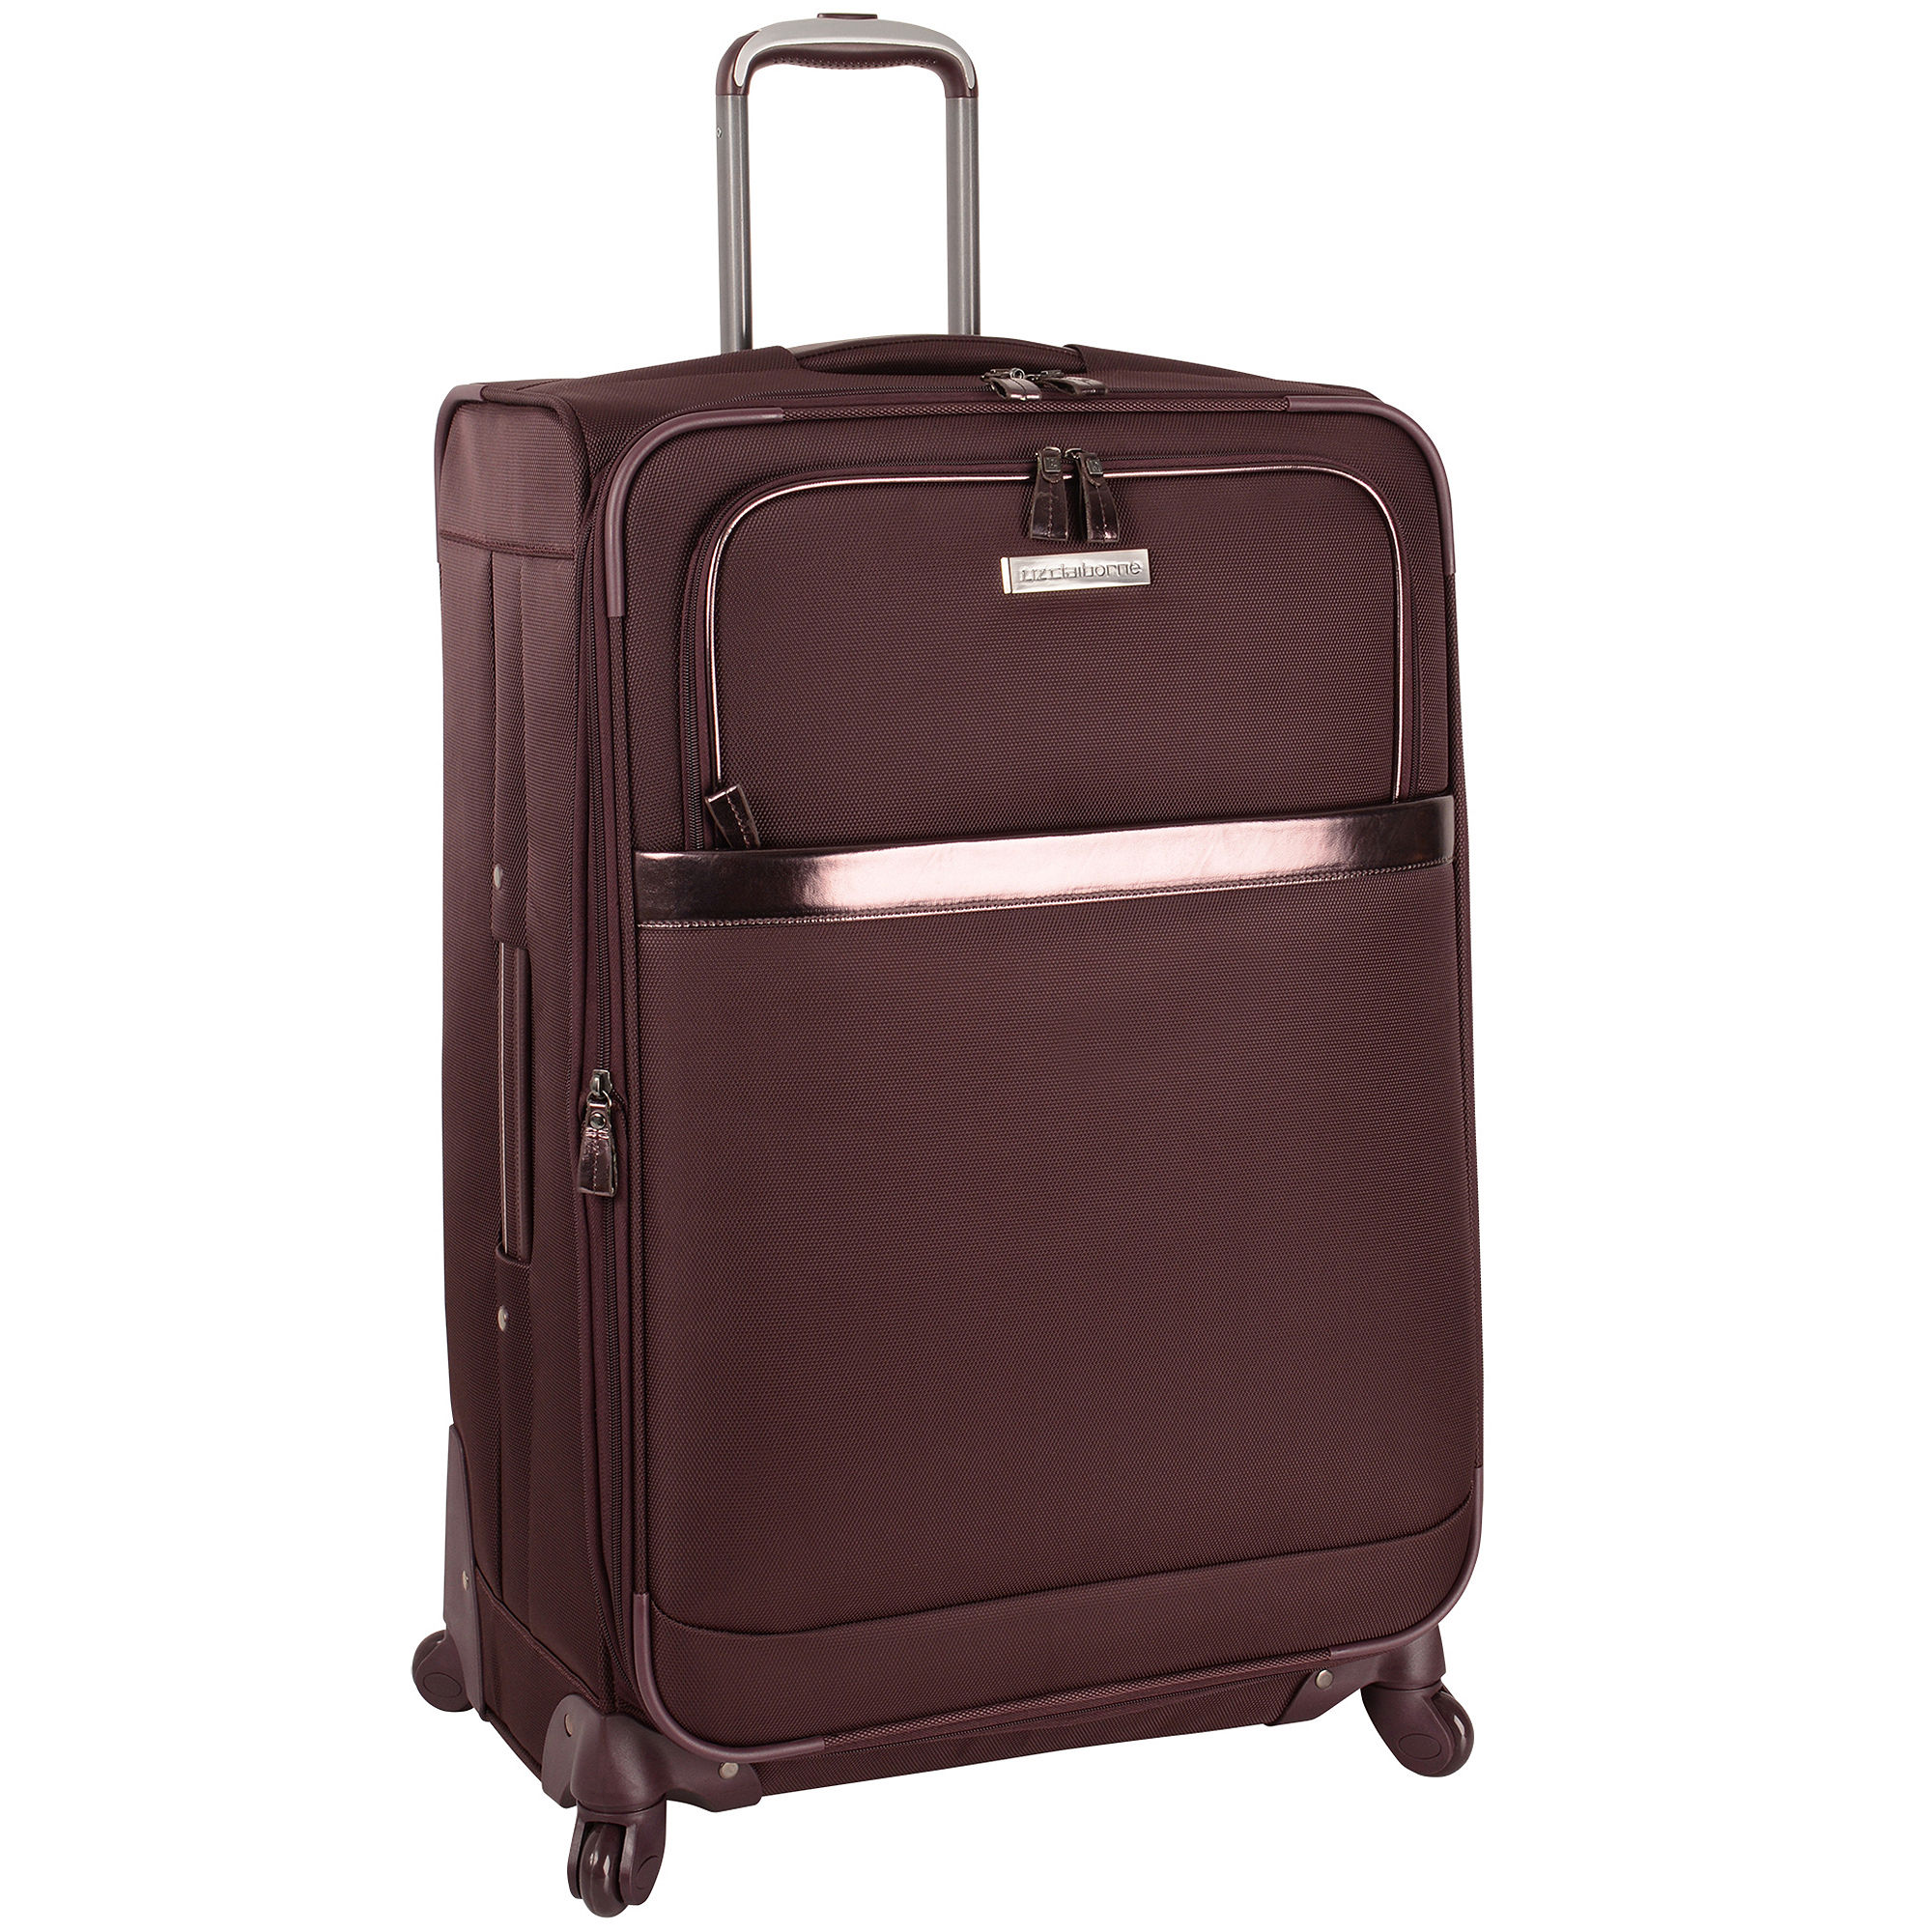 "Liz Claiborne Bel Air 28"" Expandable Spinner Upright Luggage"